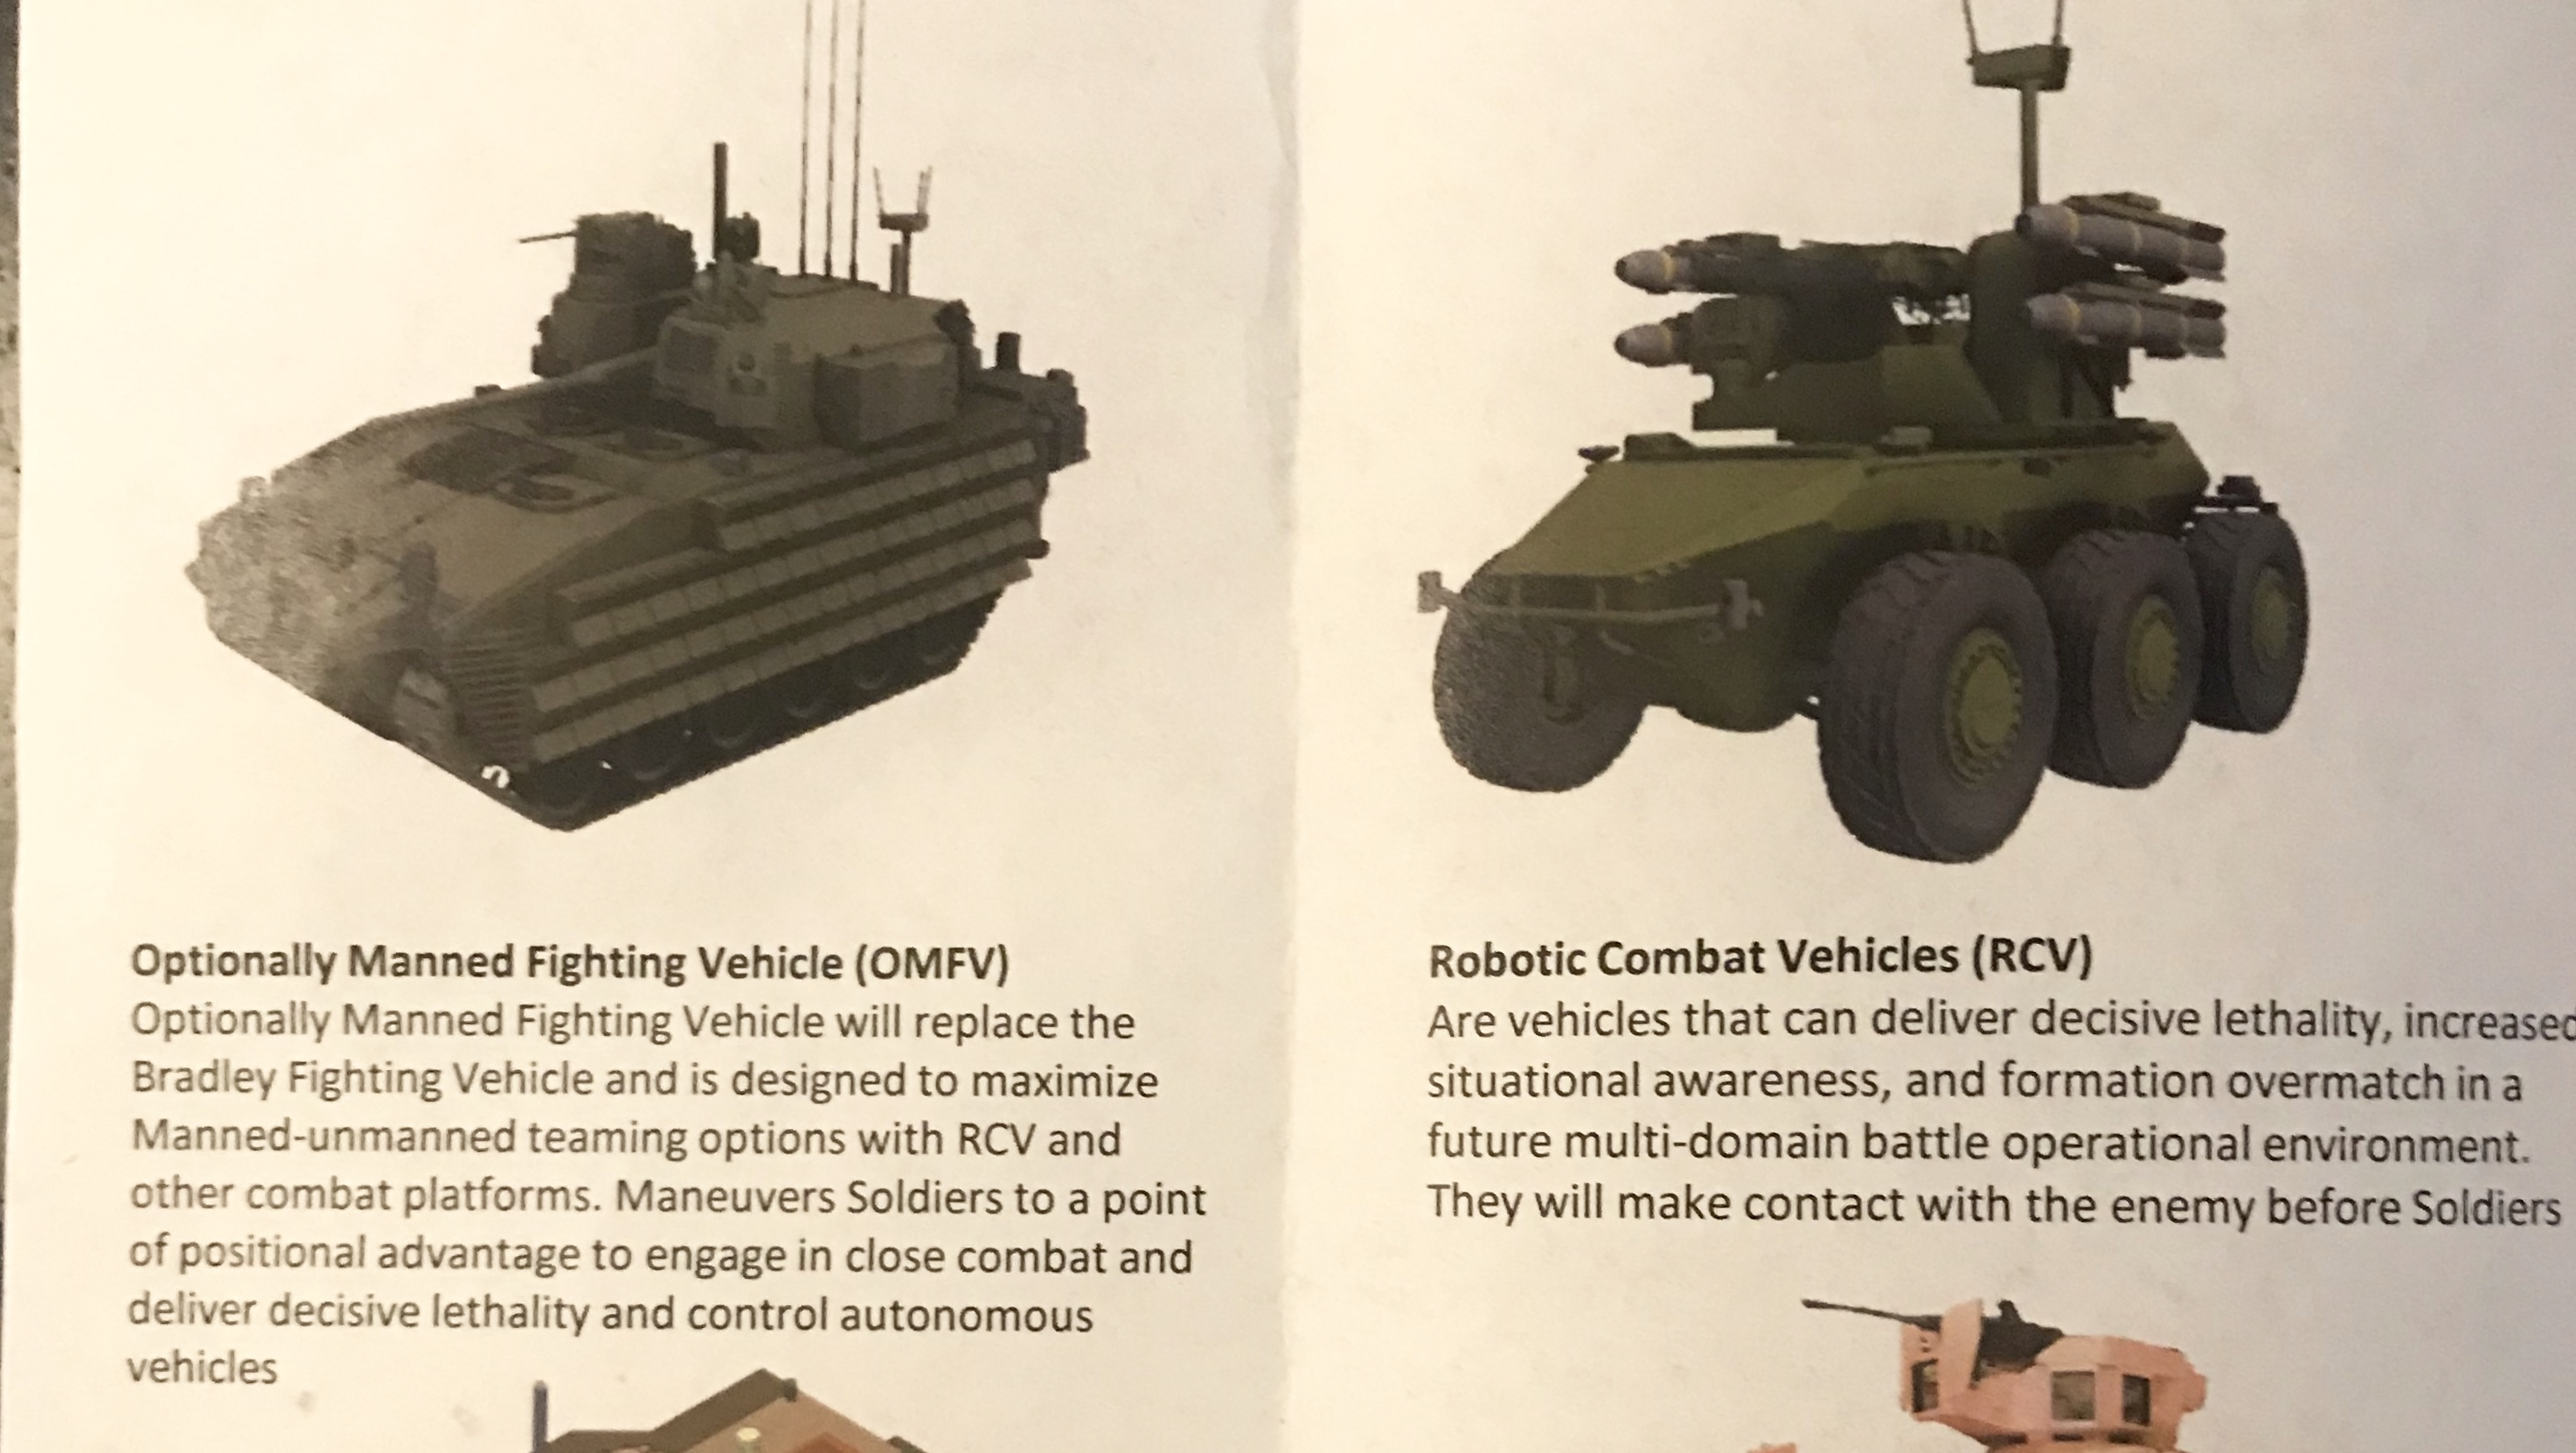 Robot Roadmap: US Army's Newest Command Sketches Priorities